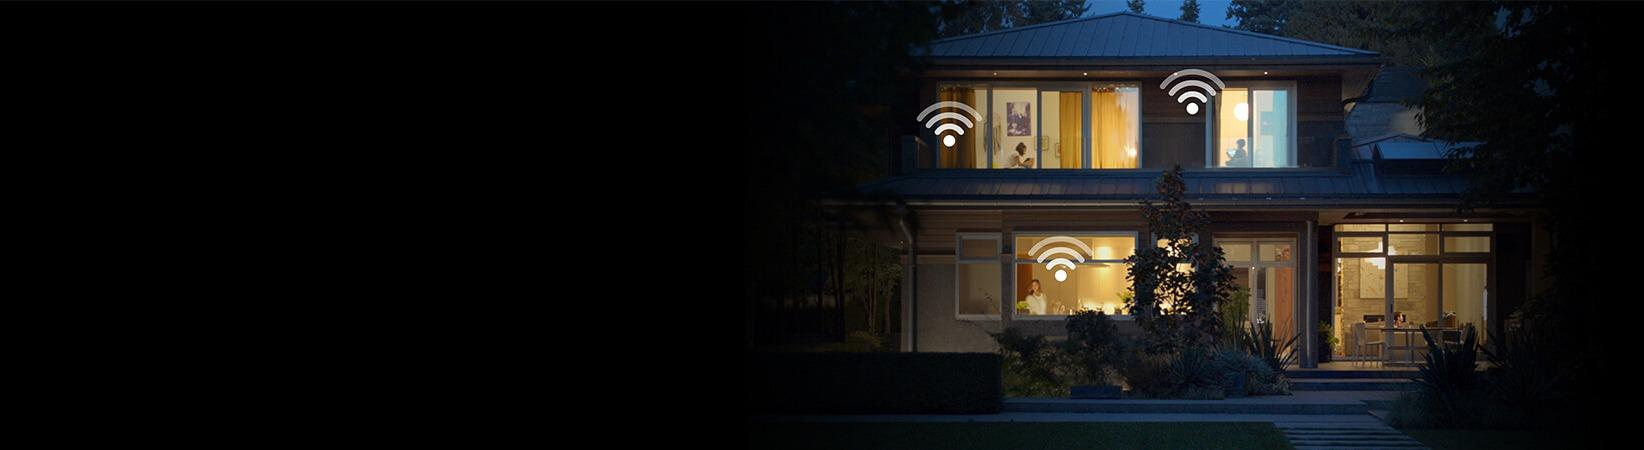 Photo of home at dusk fully connected with Suddenlink Whole Home Wifi service